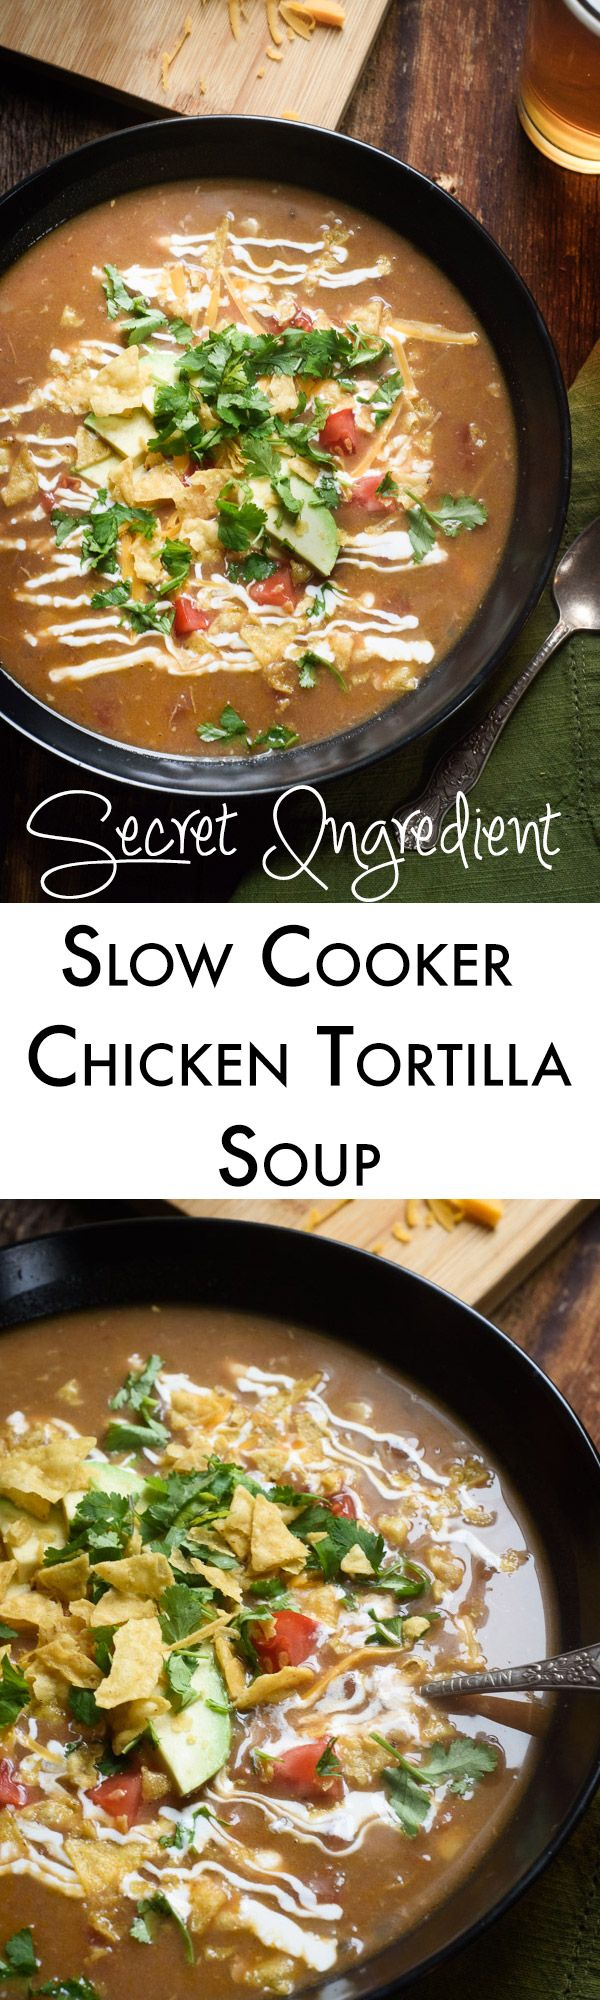 Slow cooker chicken tortilla soup is a family favorite! Our secret ingredient makes it thicker and creamier but keeps it healthy too!